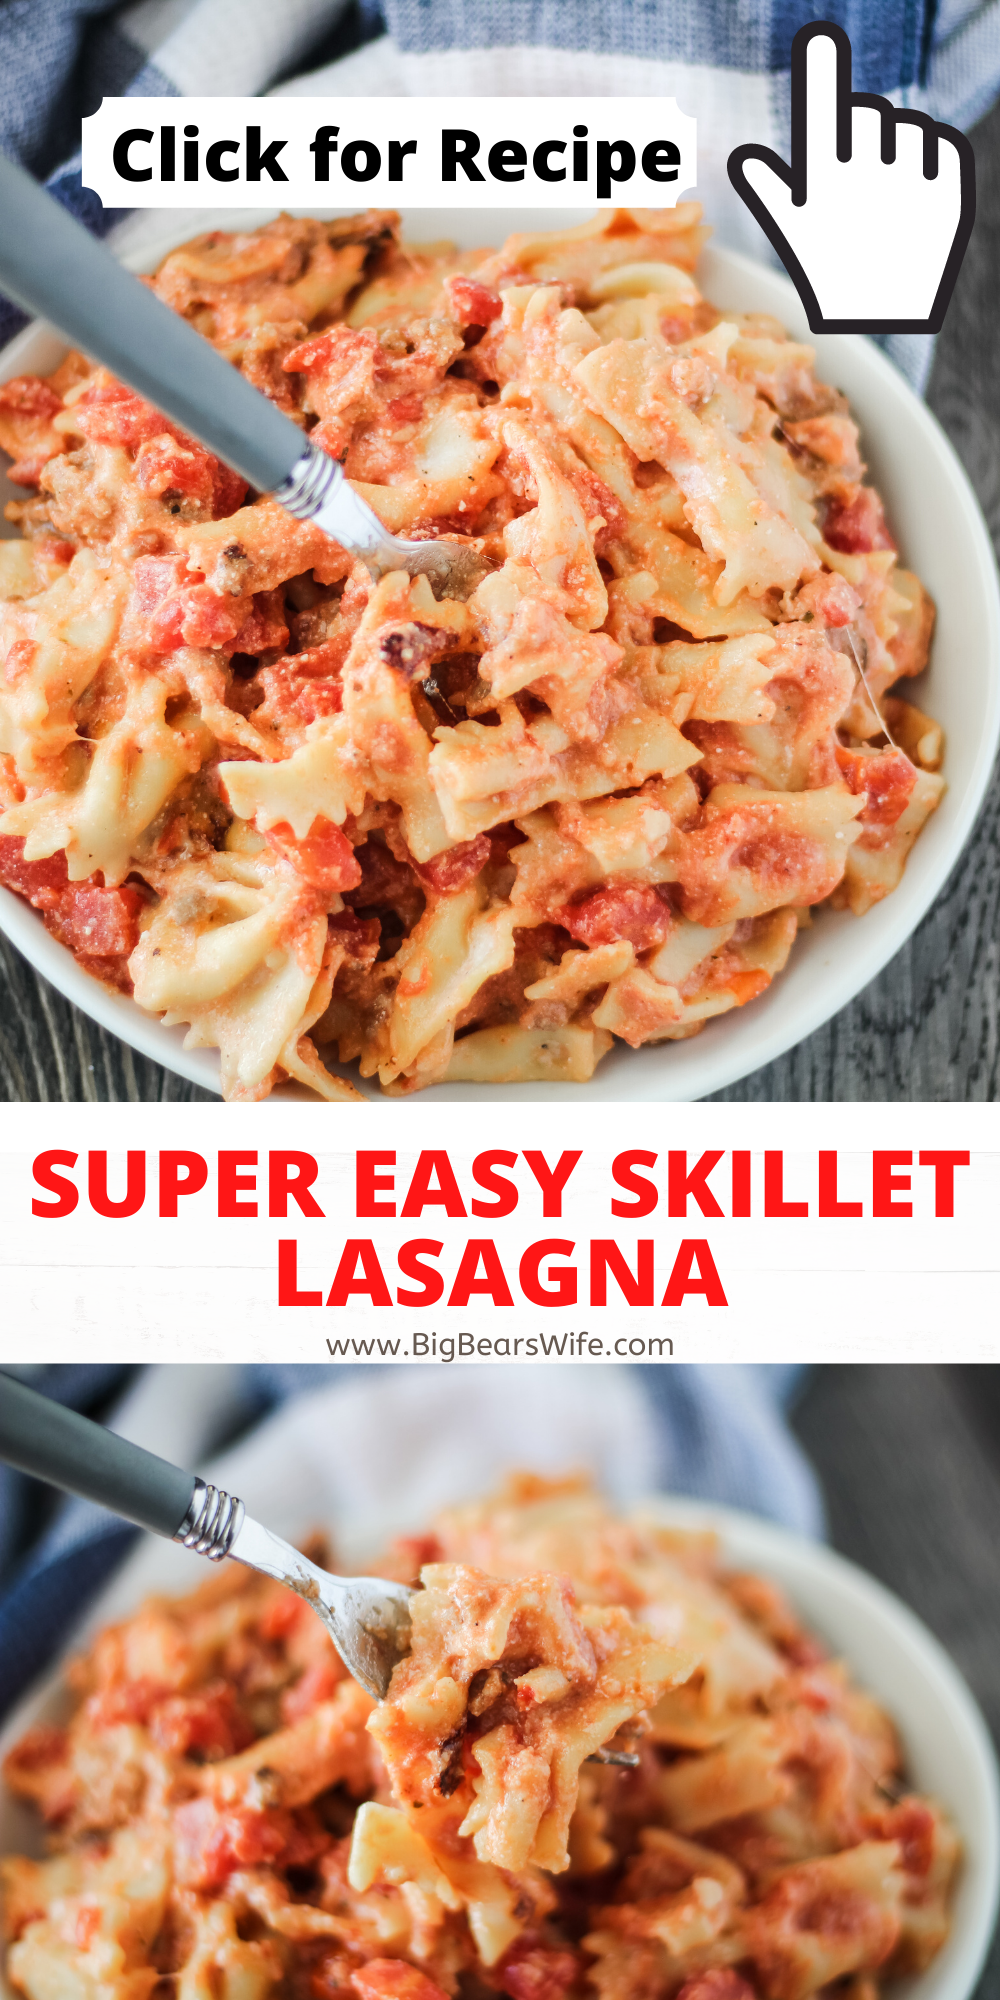 This Super Easy Skillet Lasagna will be a new family favorite and it only takes 30 minutes to make. via @bigbearswife